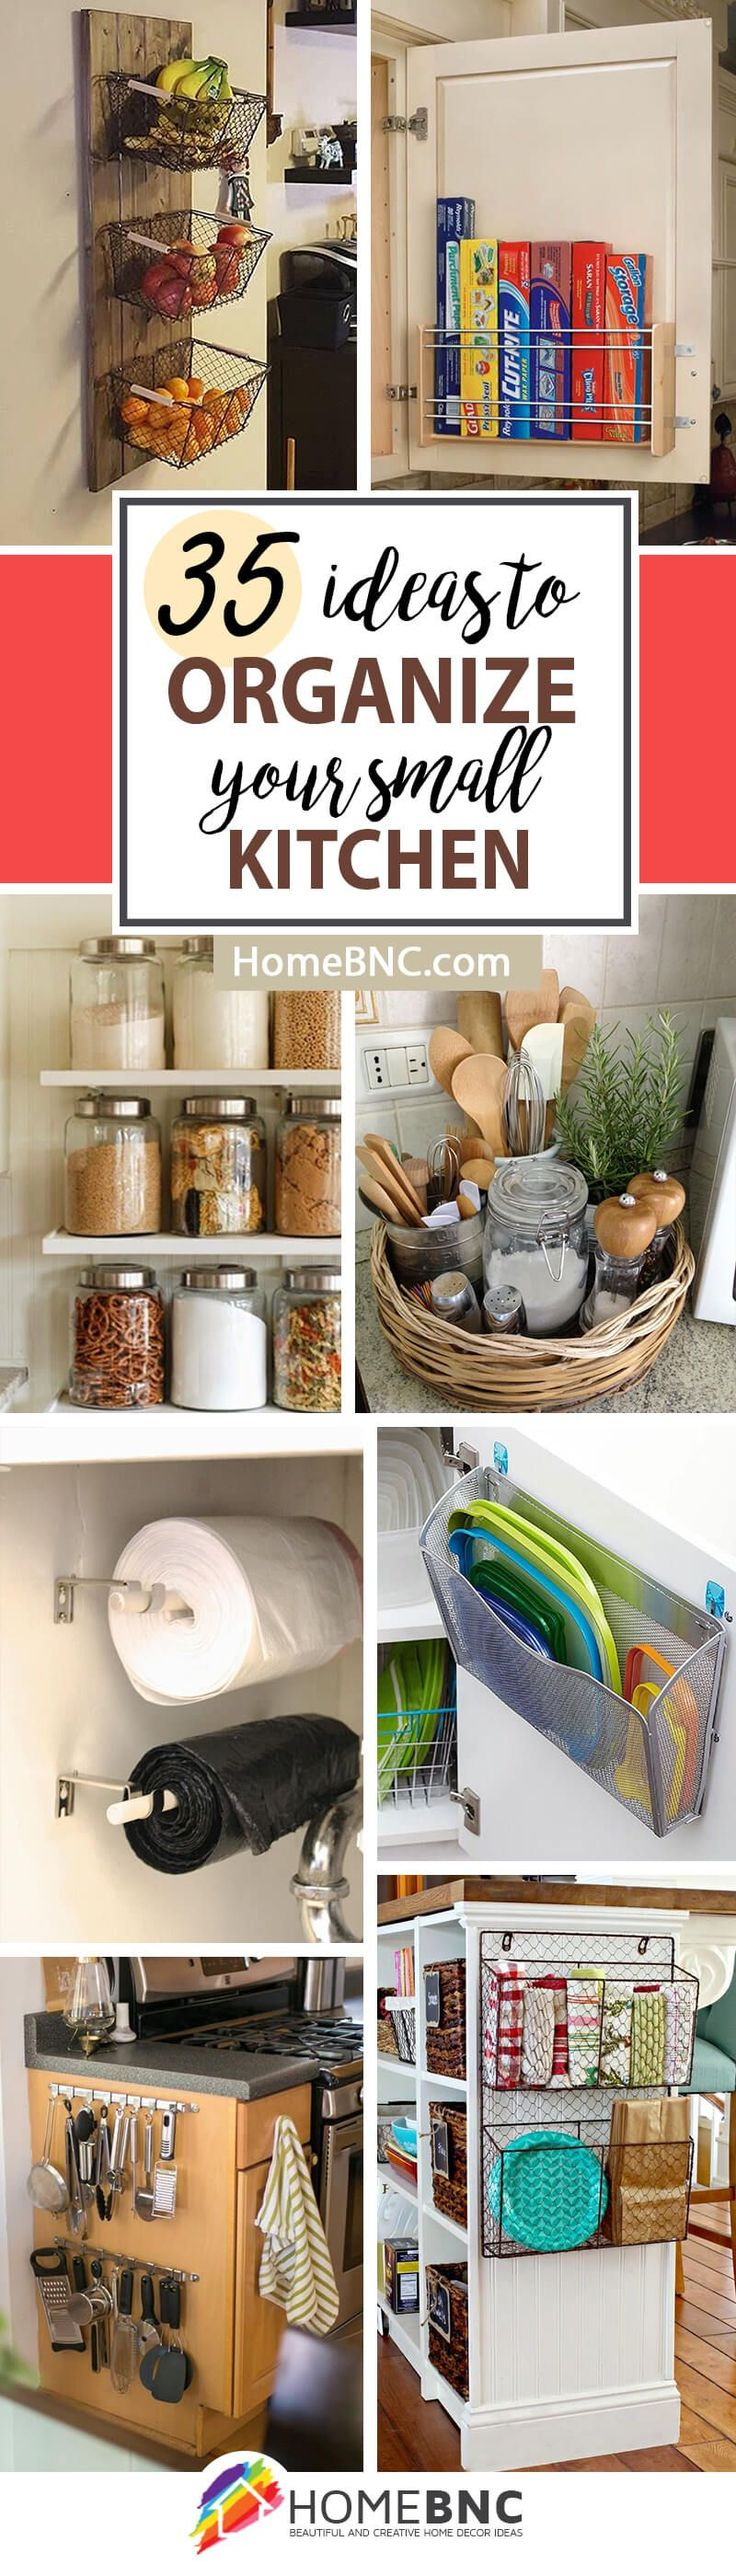 35 practical storage ideas for a small kitchen organization - Storage Ideas For A Small Kitchen